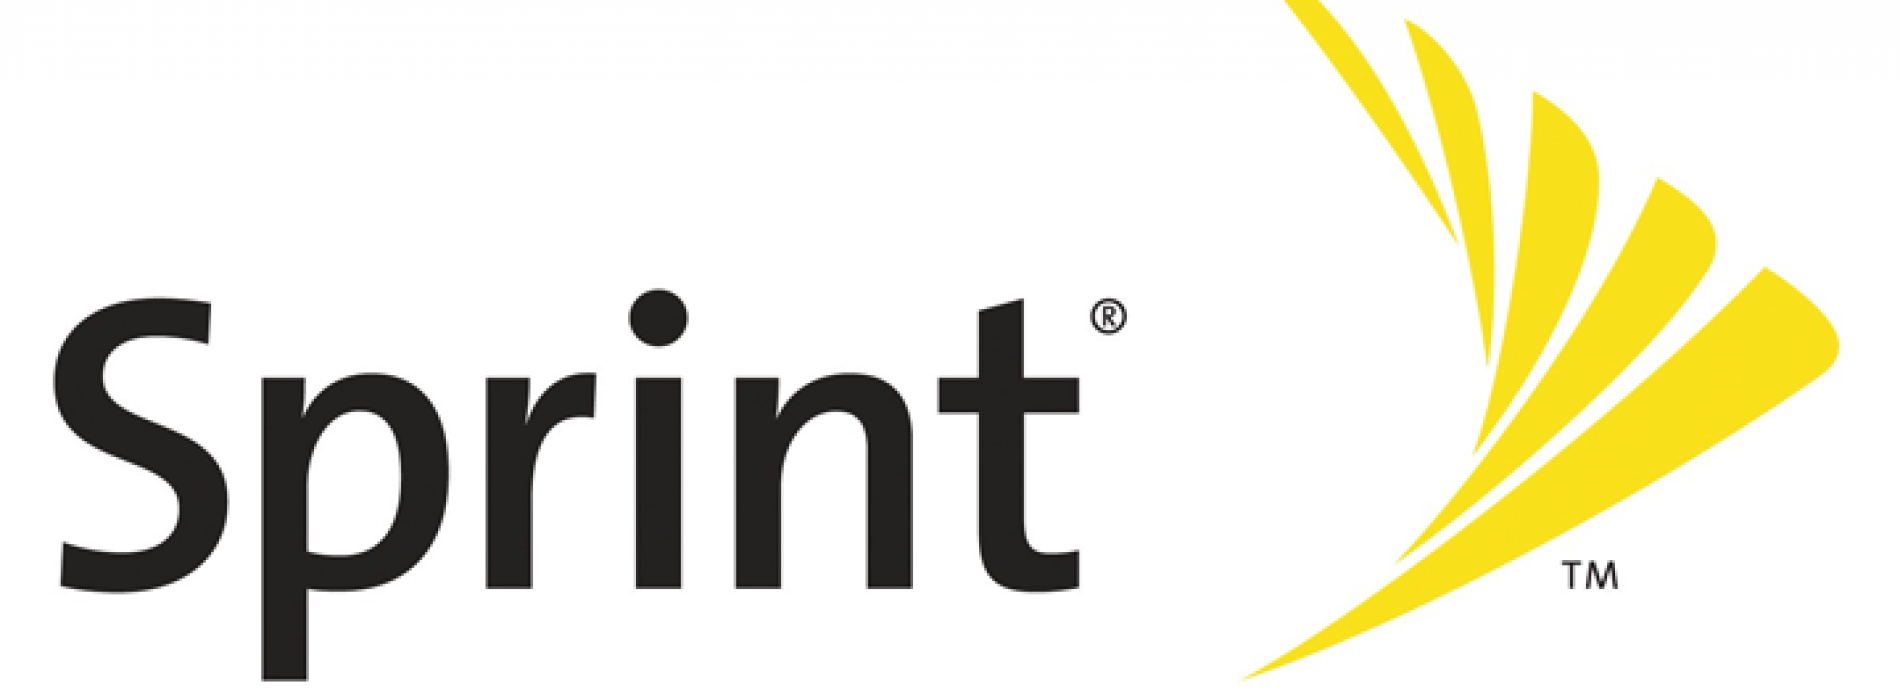 Sprint intros 'Bring Your Own Sprint Device' for MVNOs